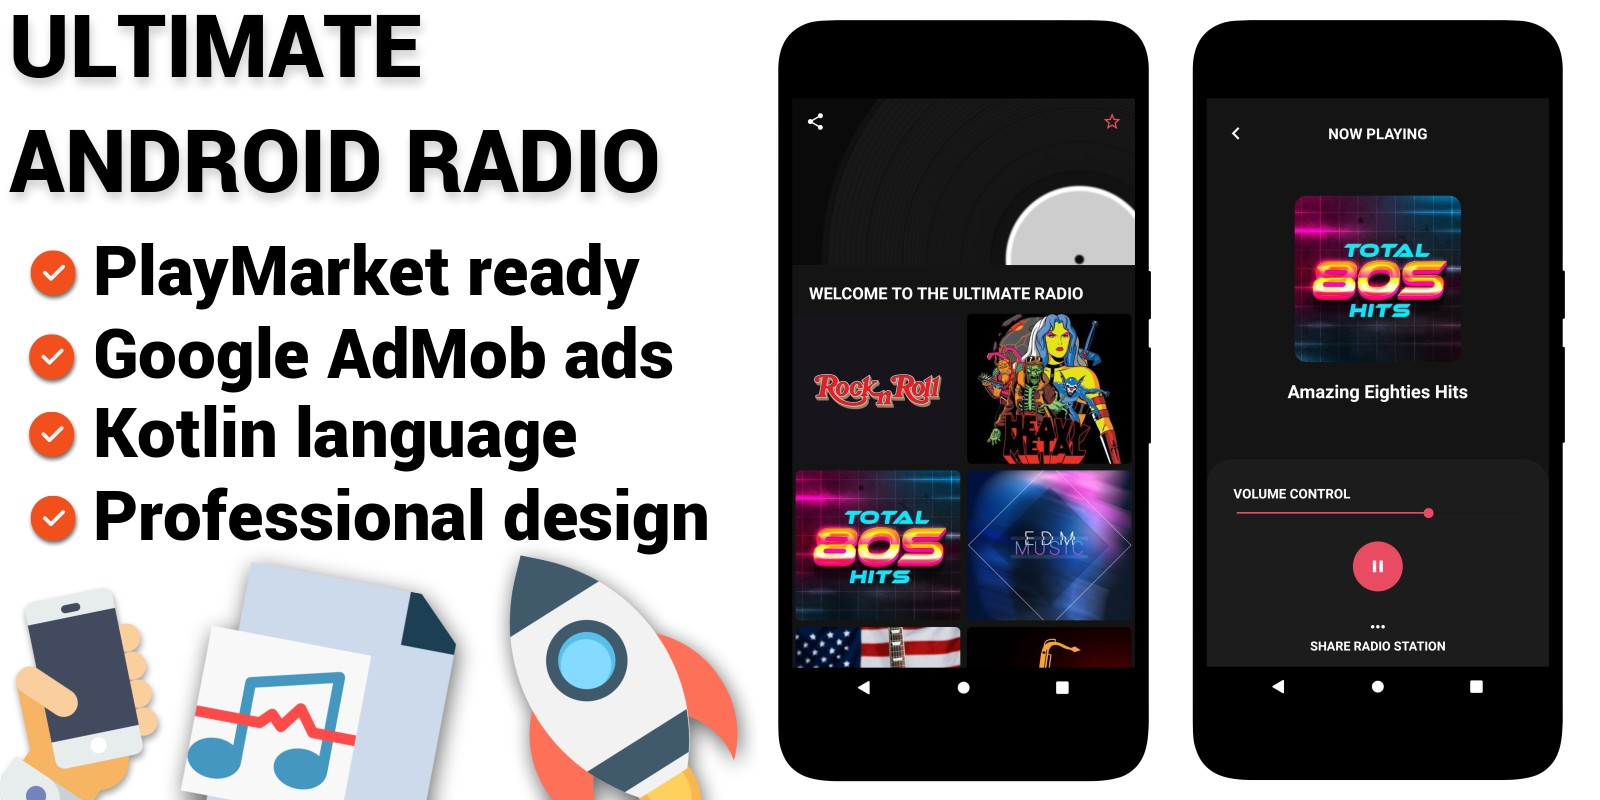 Ultimate Android Radio Android App